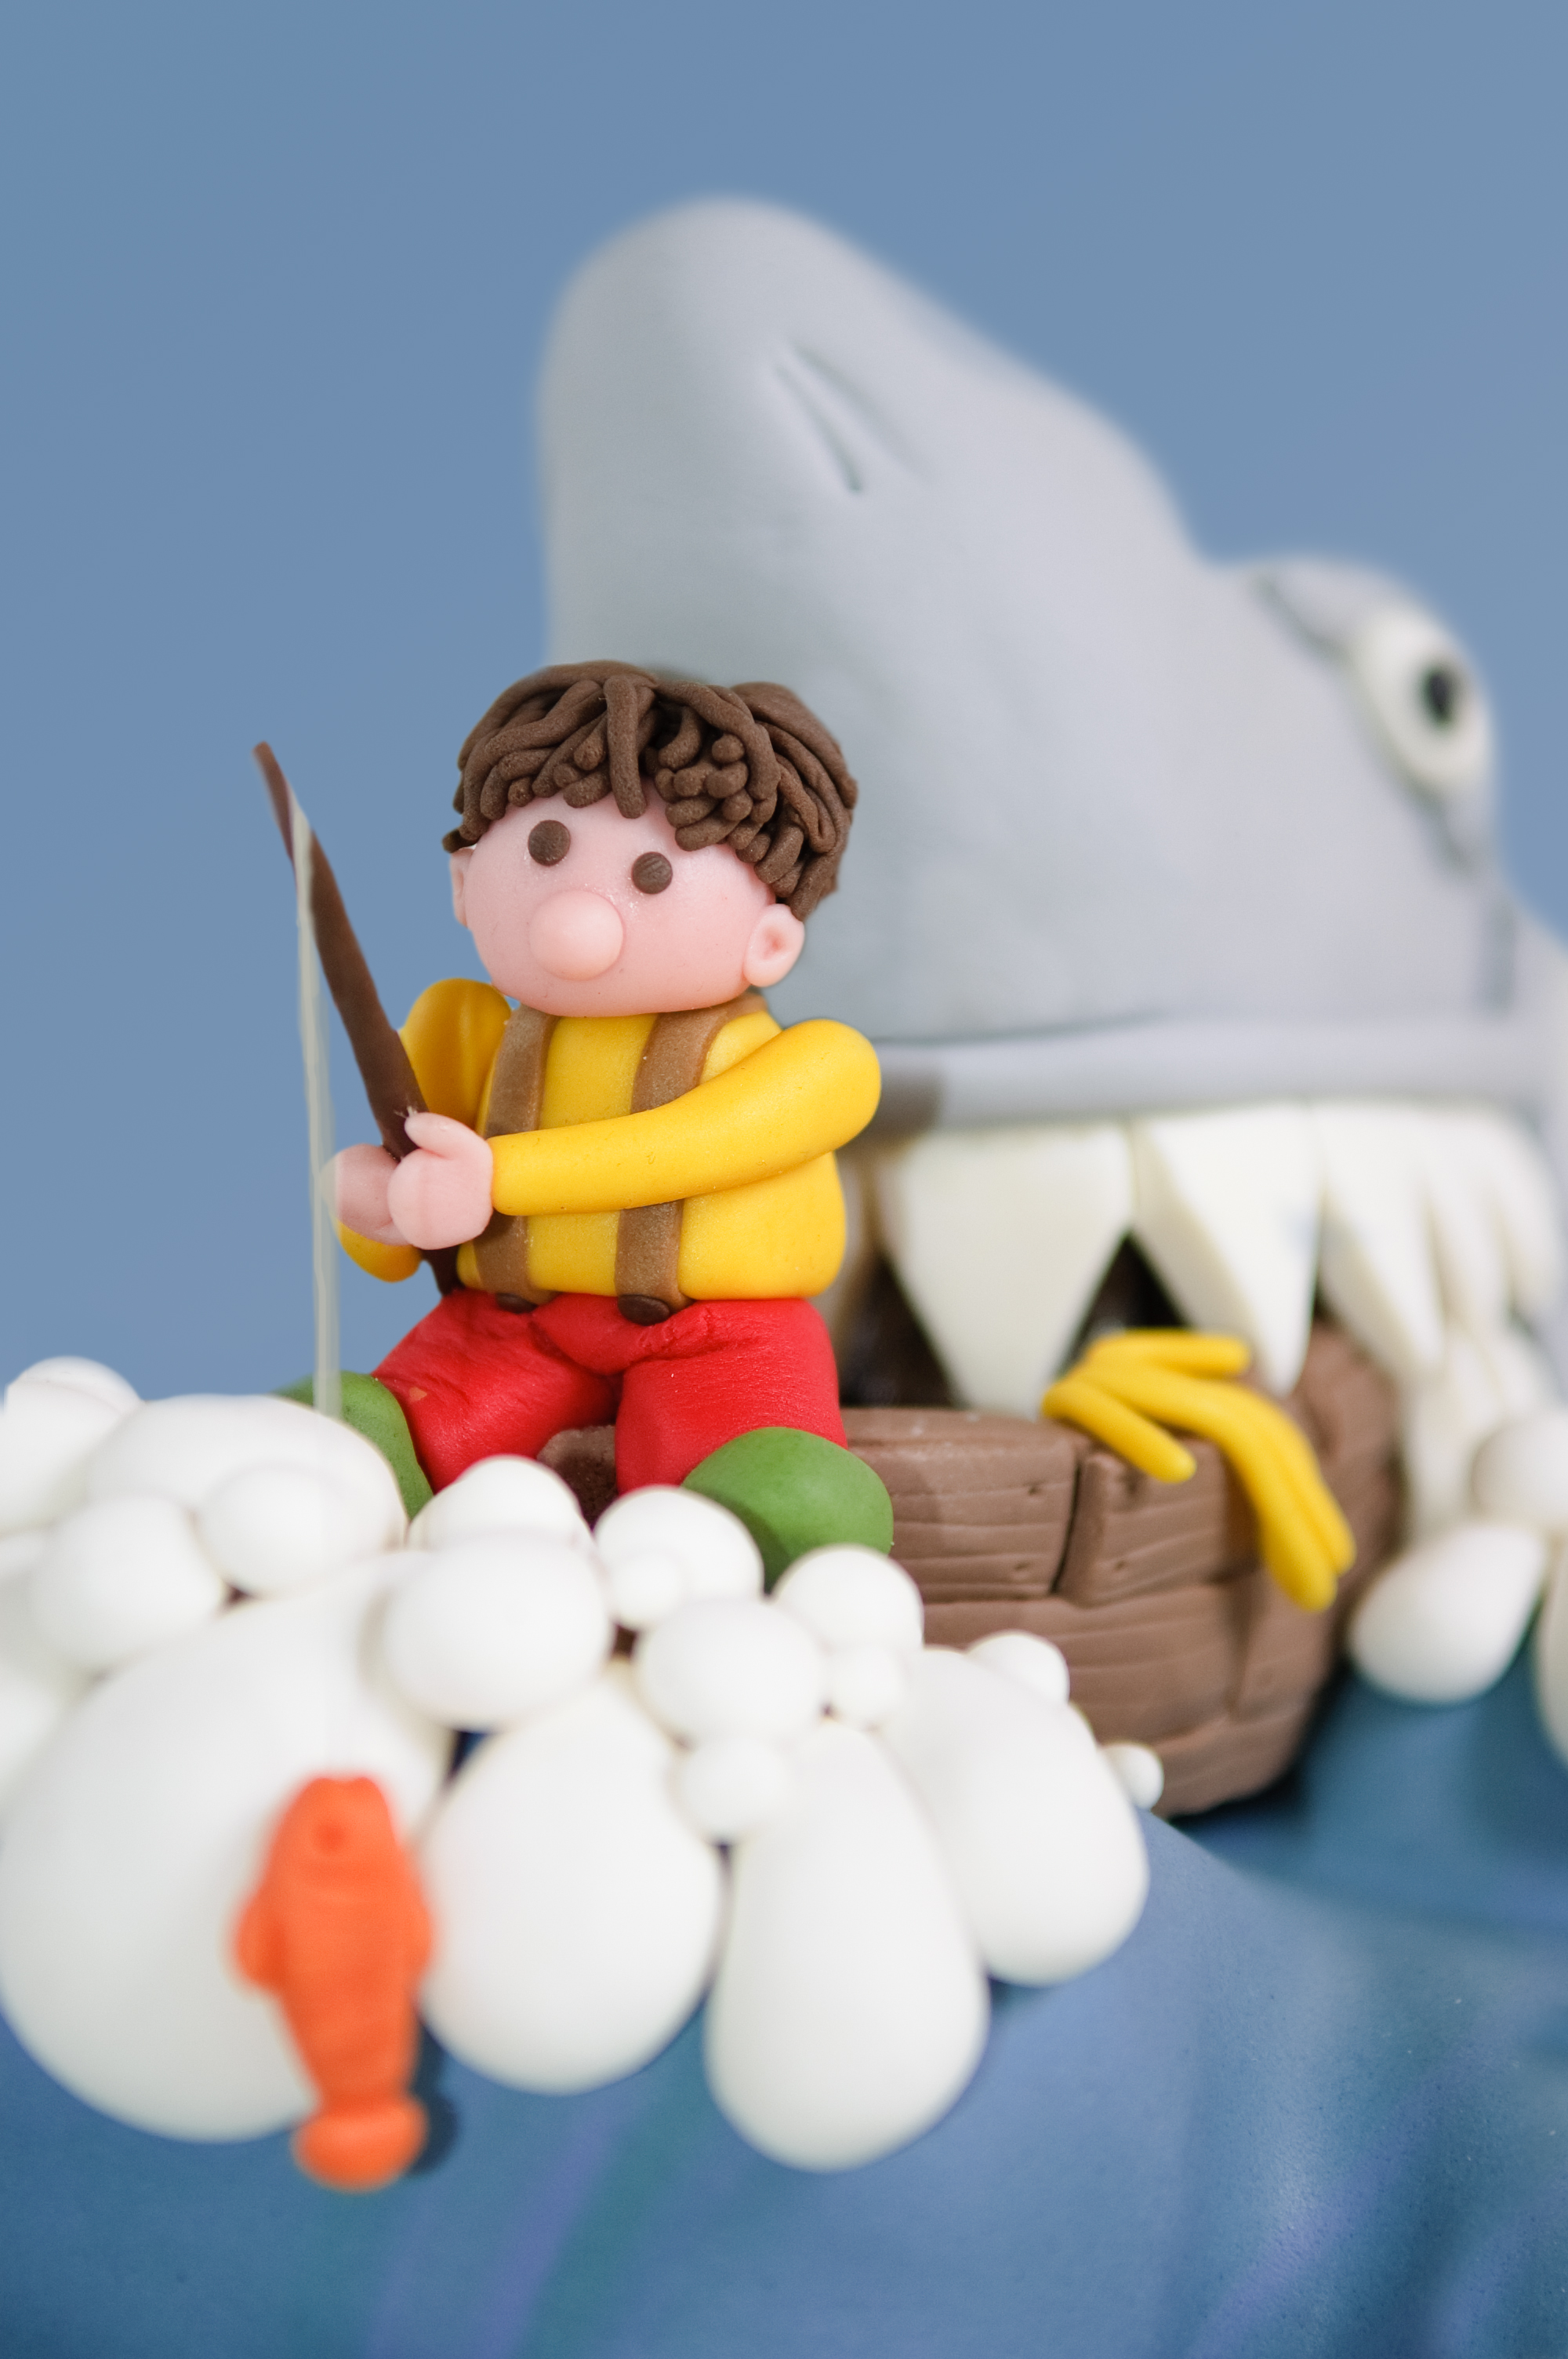 Request was to make a cake with a summer holiday feeling, so a relaxed fishing party should do the job...